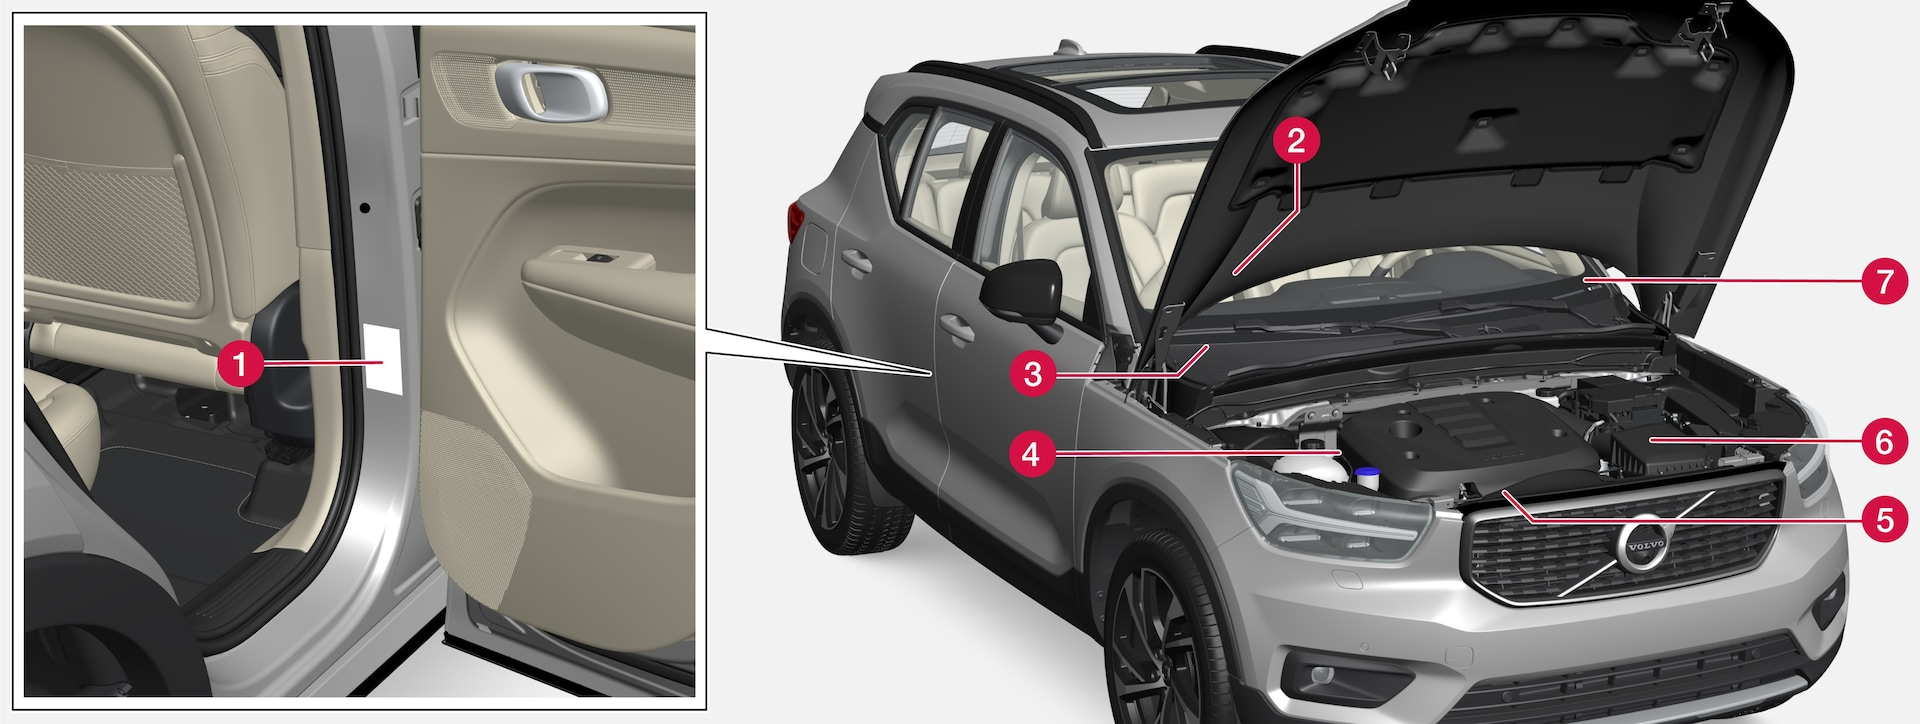 P6-1746-XC40-Type approval, labels, not Brasil, China, Russia and Saudi Arabia